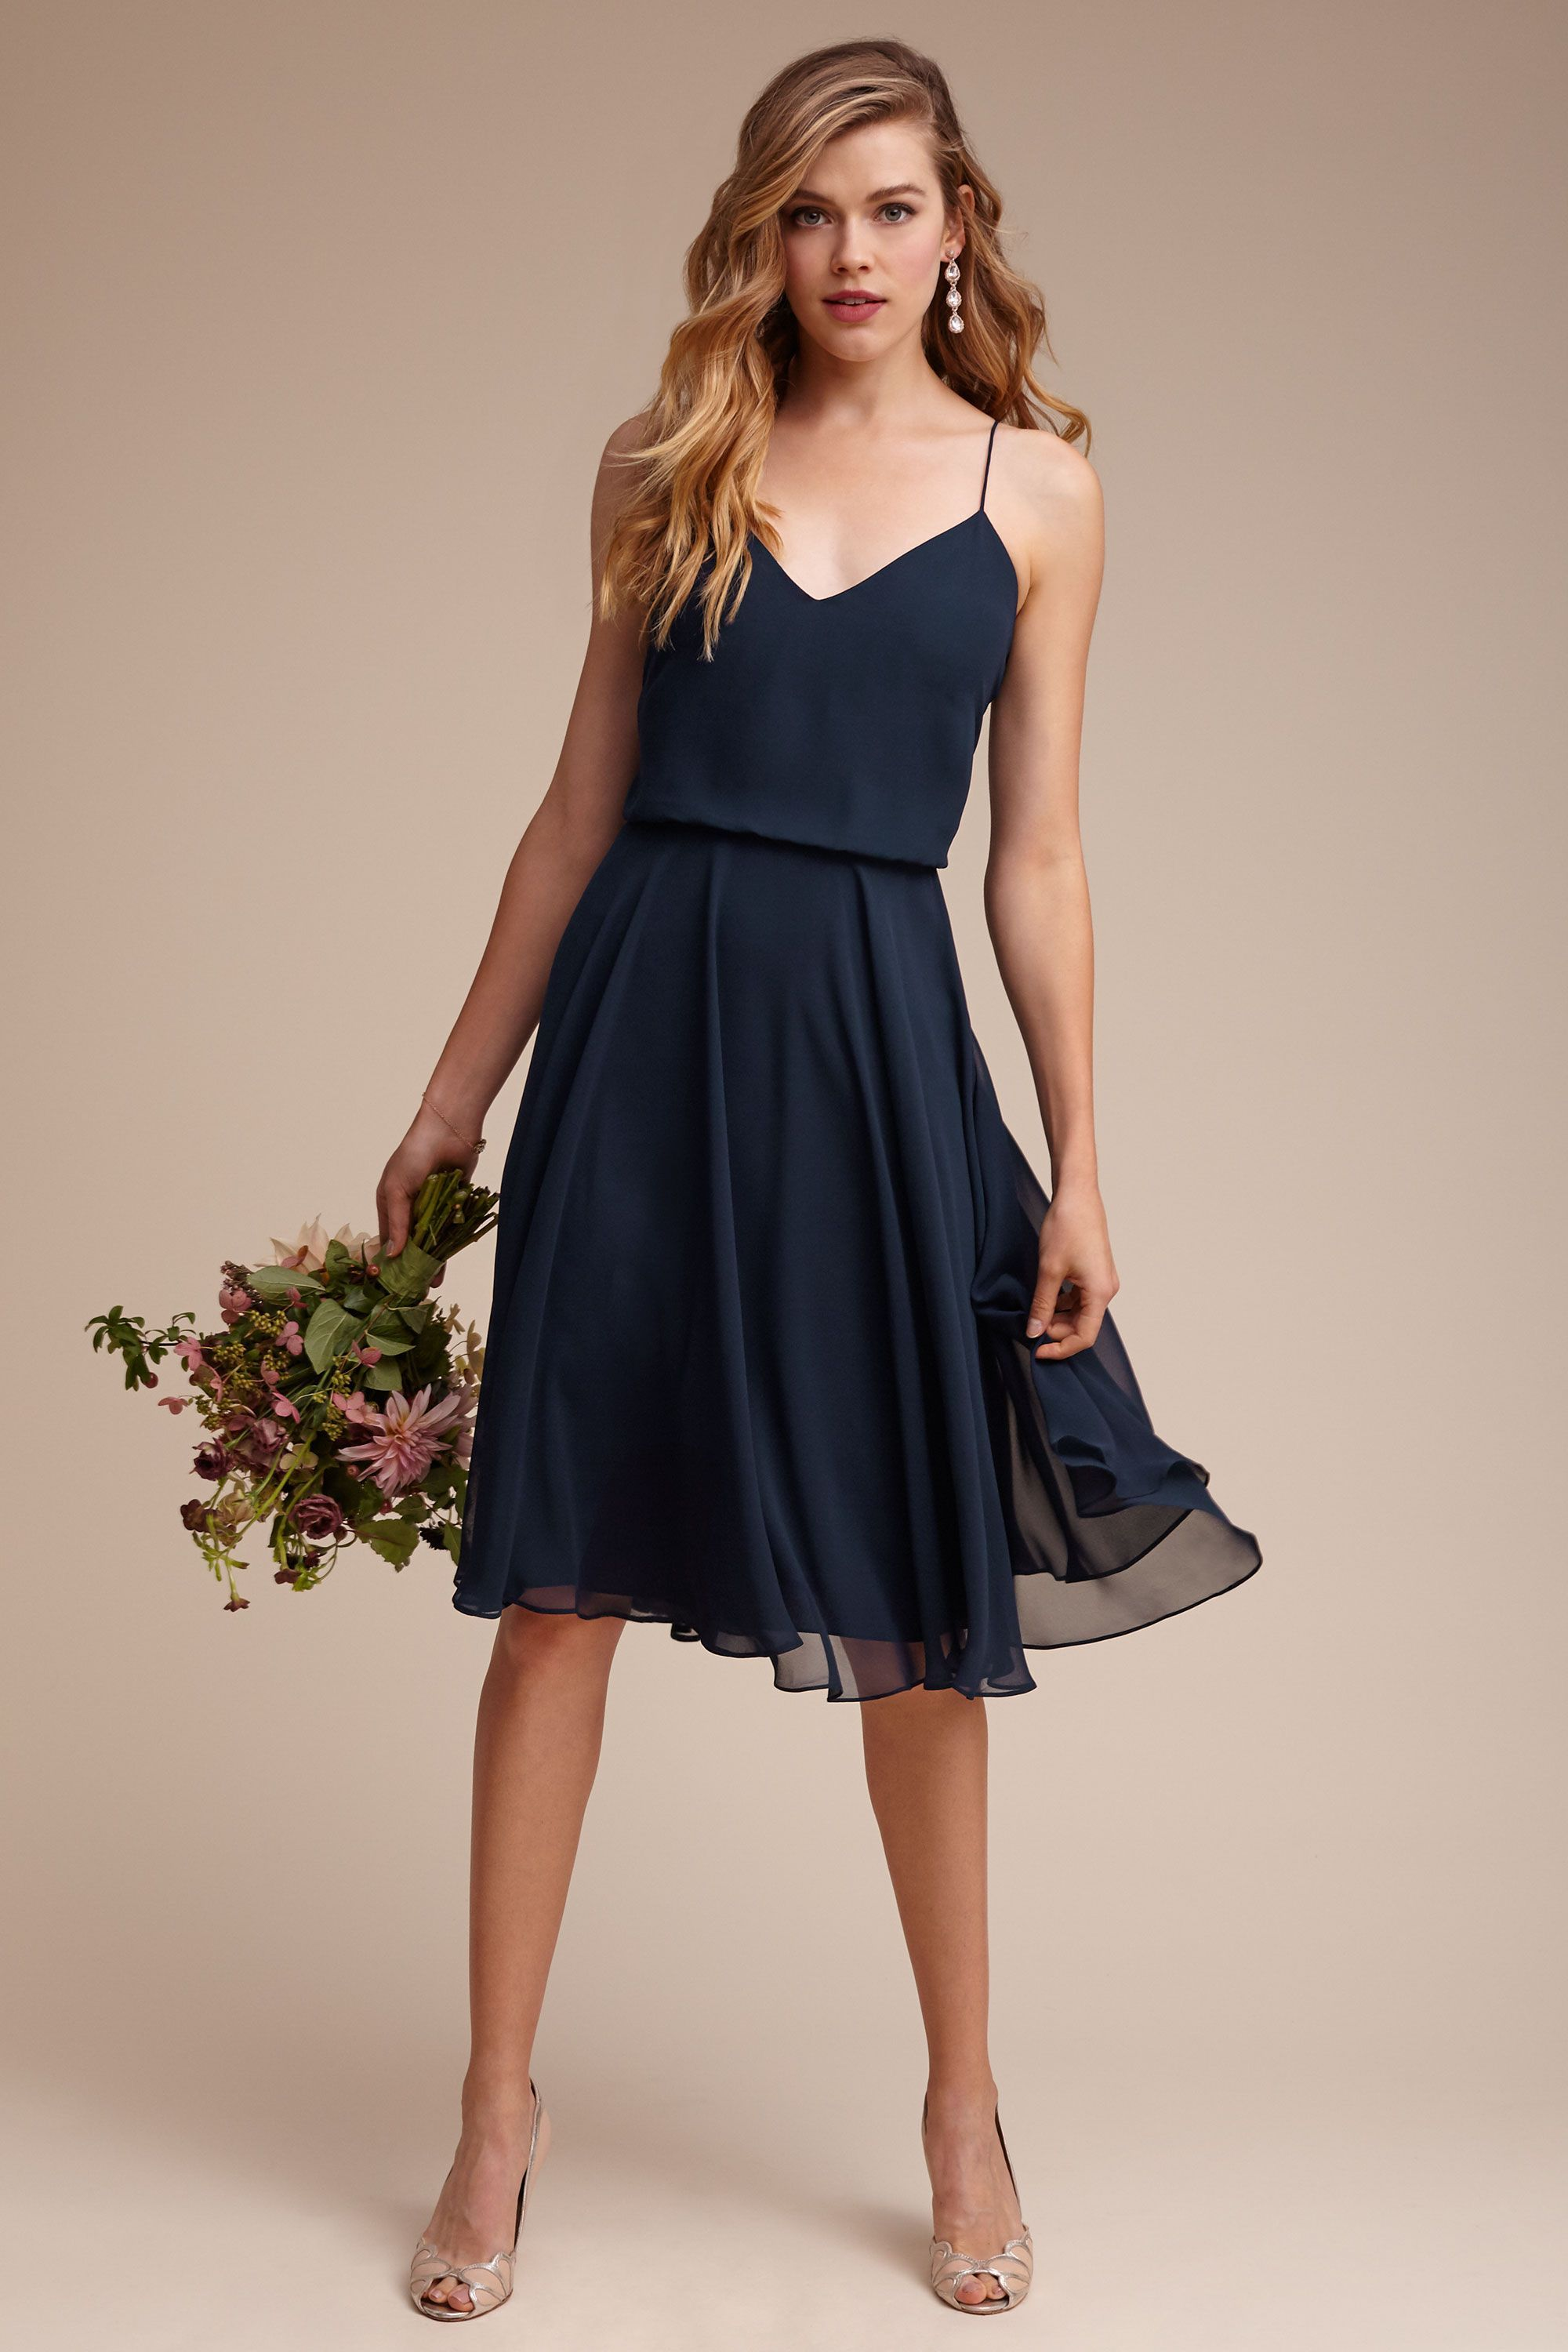 Navy Bridesmaid Dress With Delicate Straps And Short Length By Jenny Yoo Blue Bridesmaid Dresses Short Navy Blue Bridesmaid Dresses Short Bridesmaid Dresses [ 3000 x 2000 Pixel ]